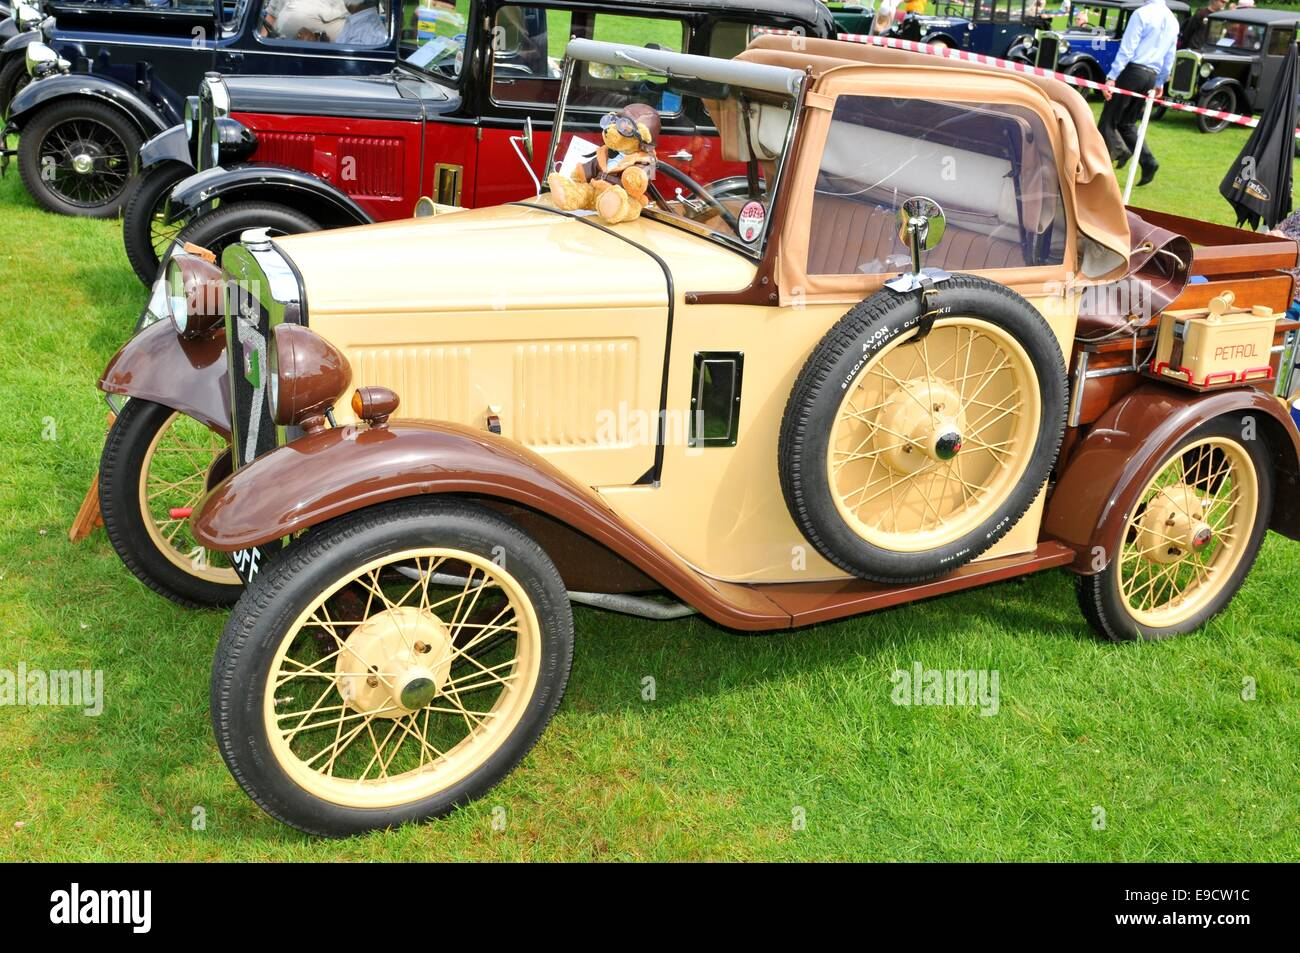 NOTTINGHAM, UK. JUNE 1, 2014: Side view of vintage car for sale in ...